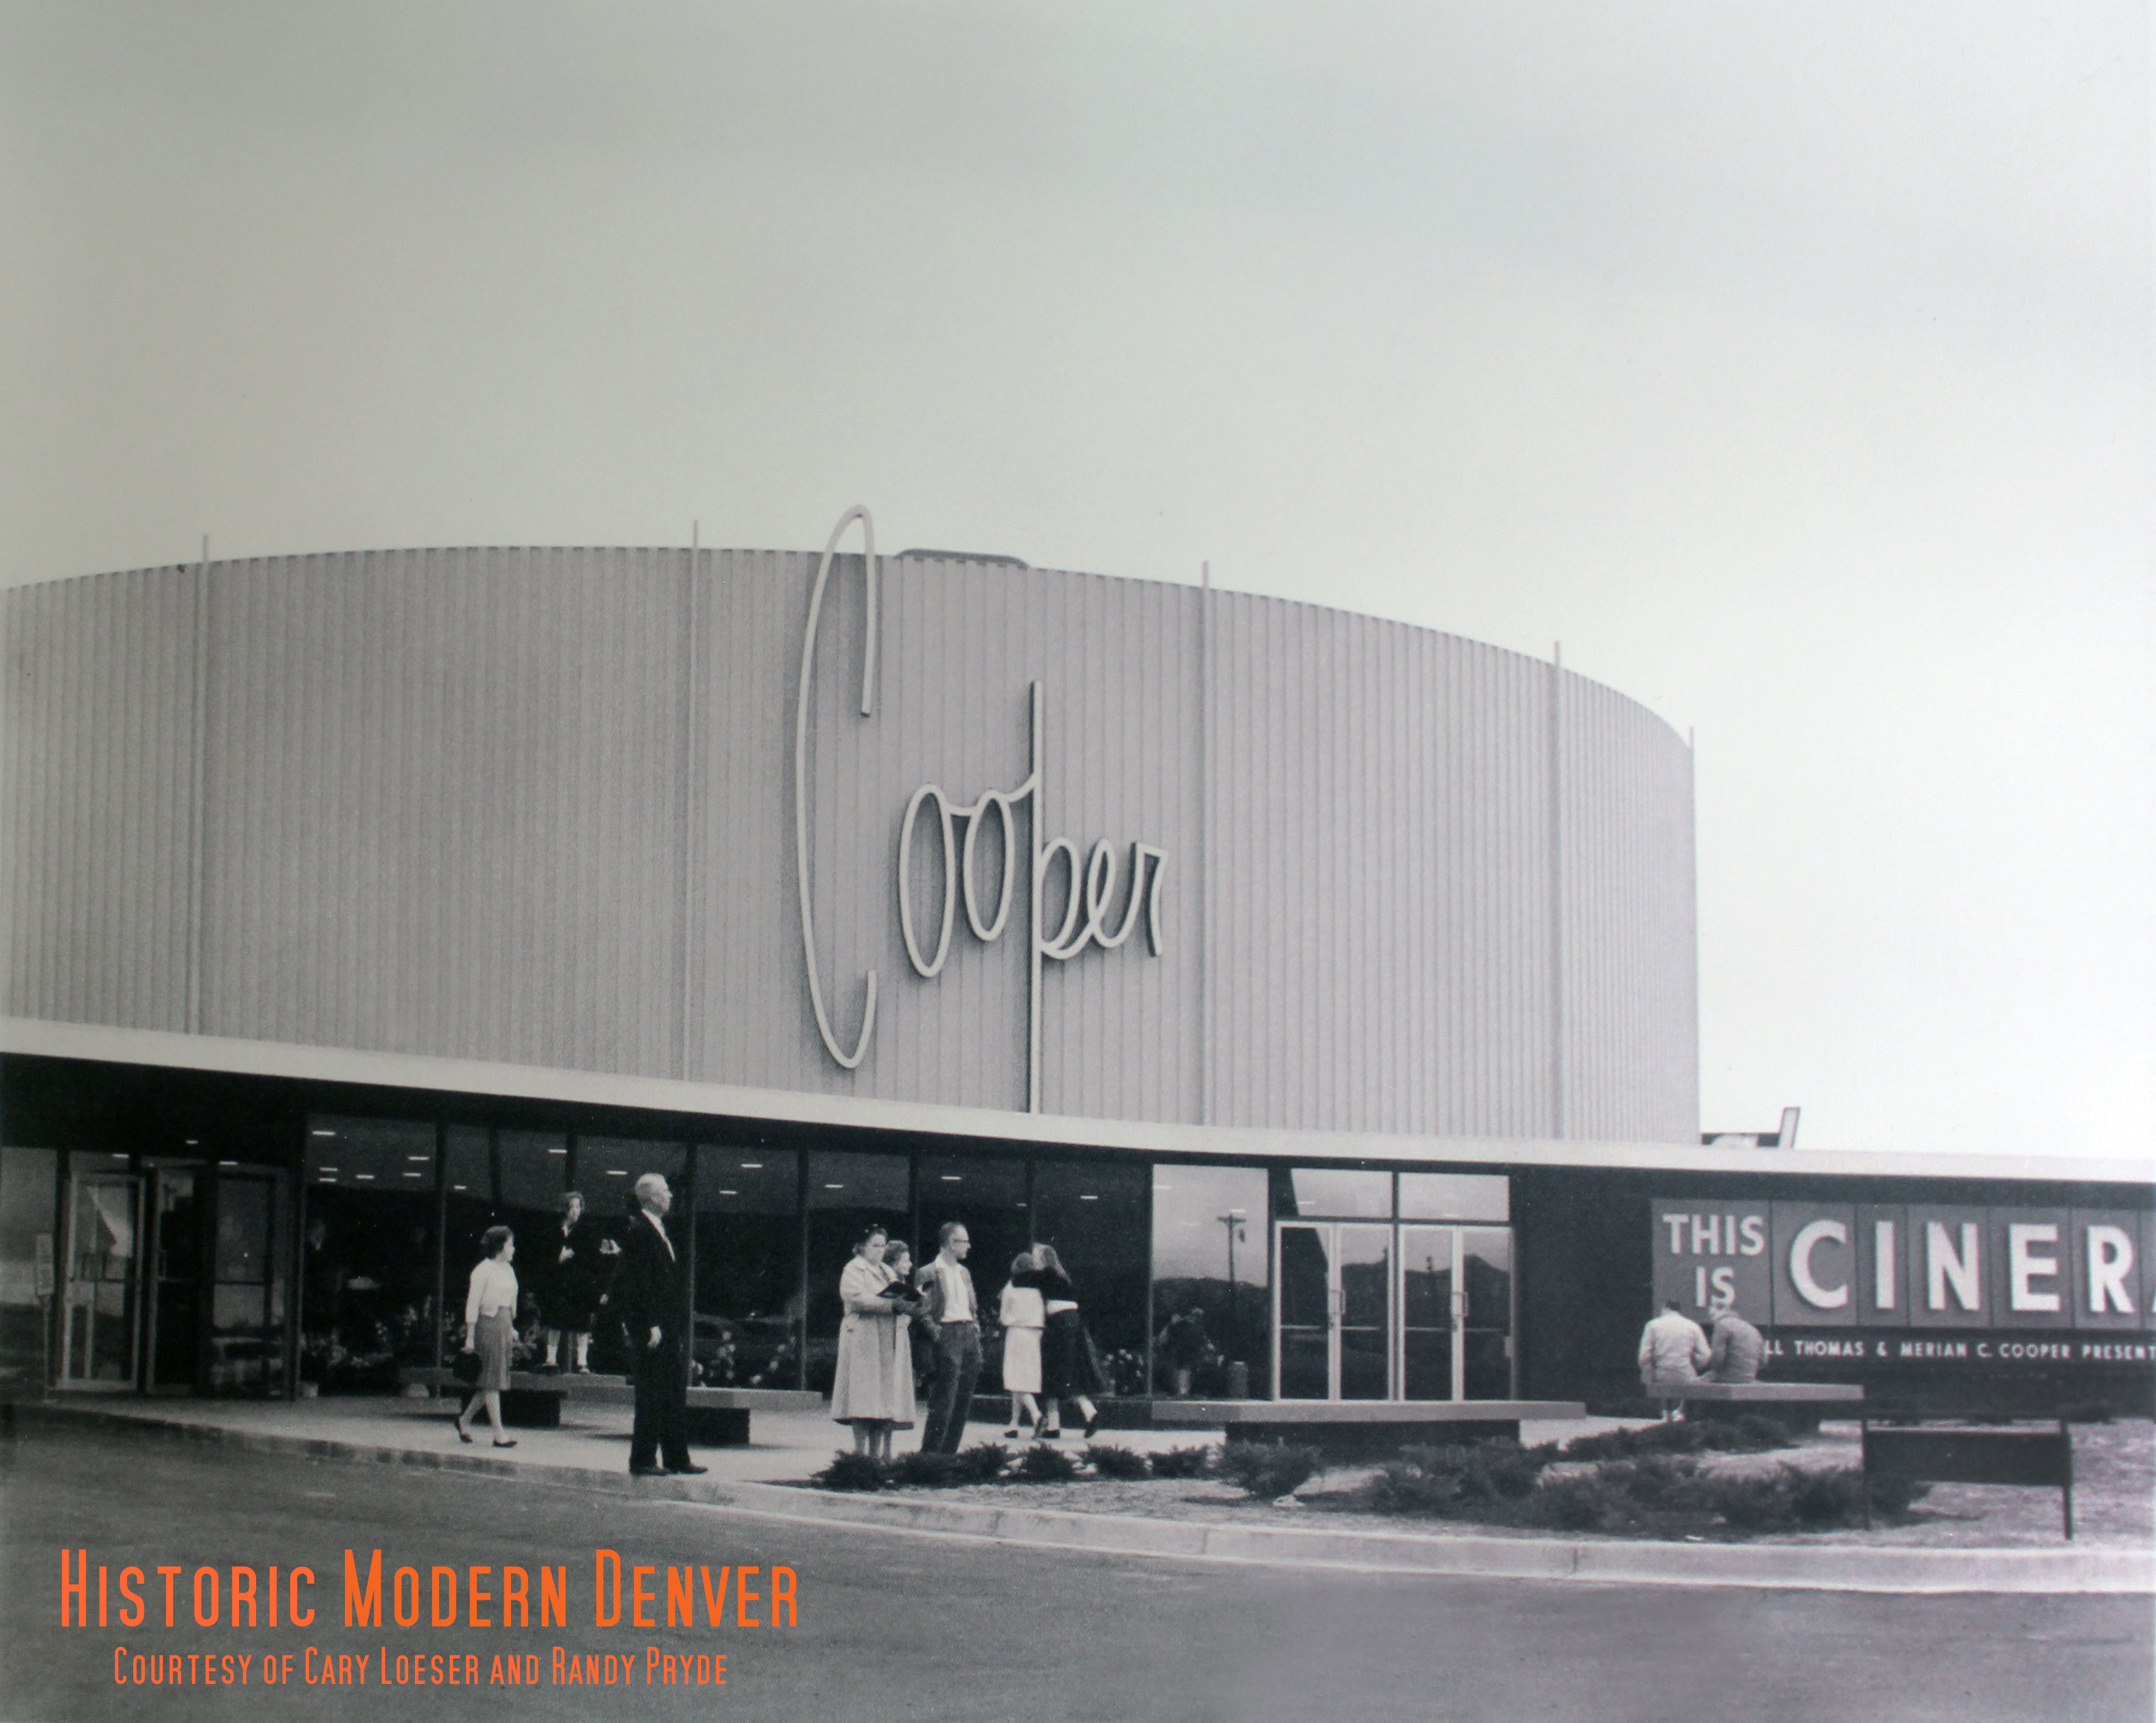 The cooper theatre of tomorrow historic modern denver a panel approximately 8 x 15 feet was set out where copy could be read easily from cars on south colorado blvd malvernweather Image collections